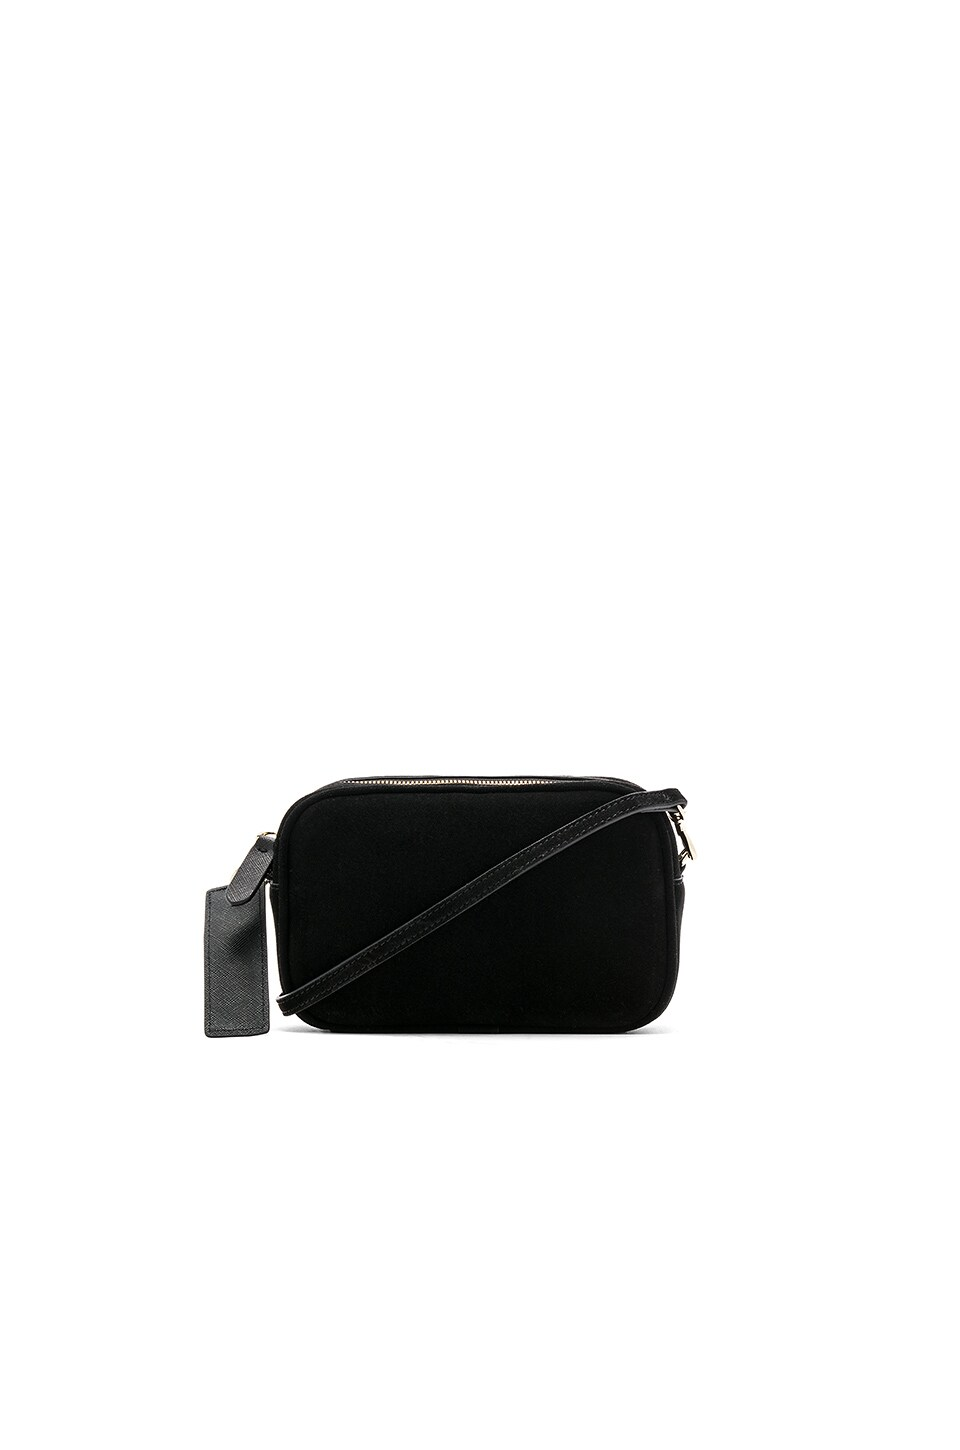 the daily edited Suede Mini Crossbody Bag in Black